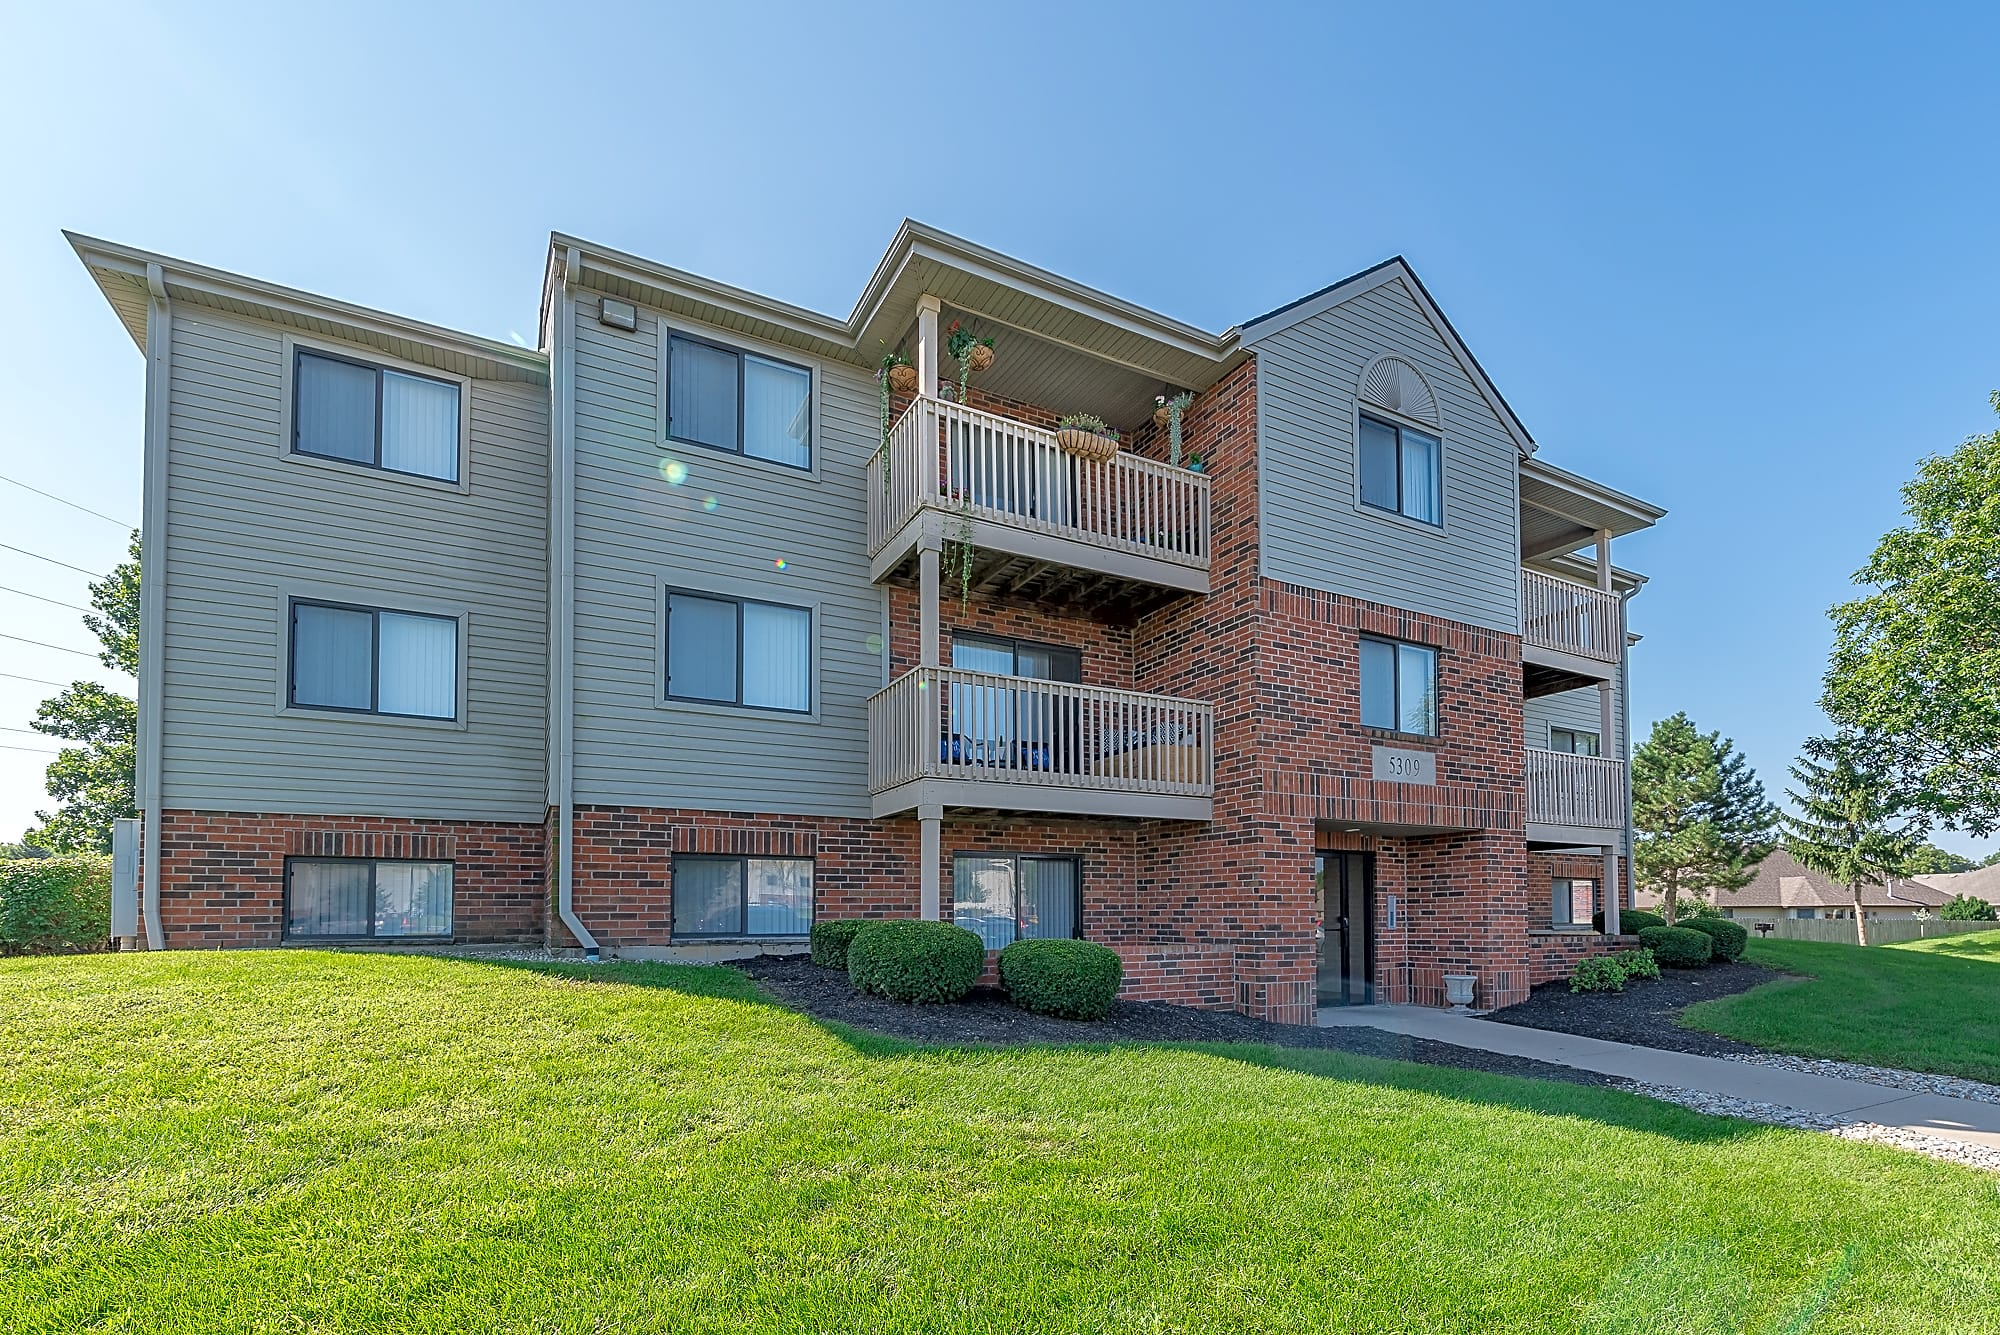 Apartments Near Anderson Mill Pond for Anderson University Students in Anderson, IN